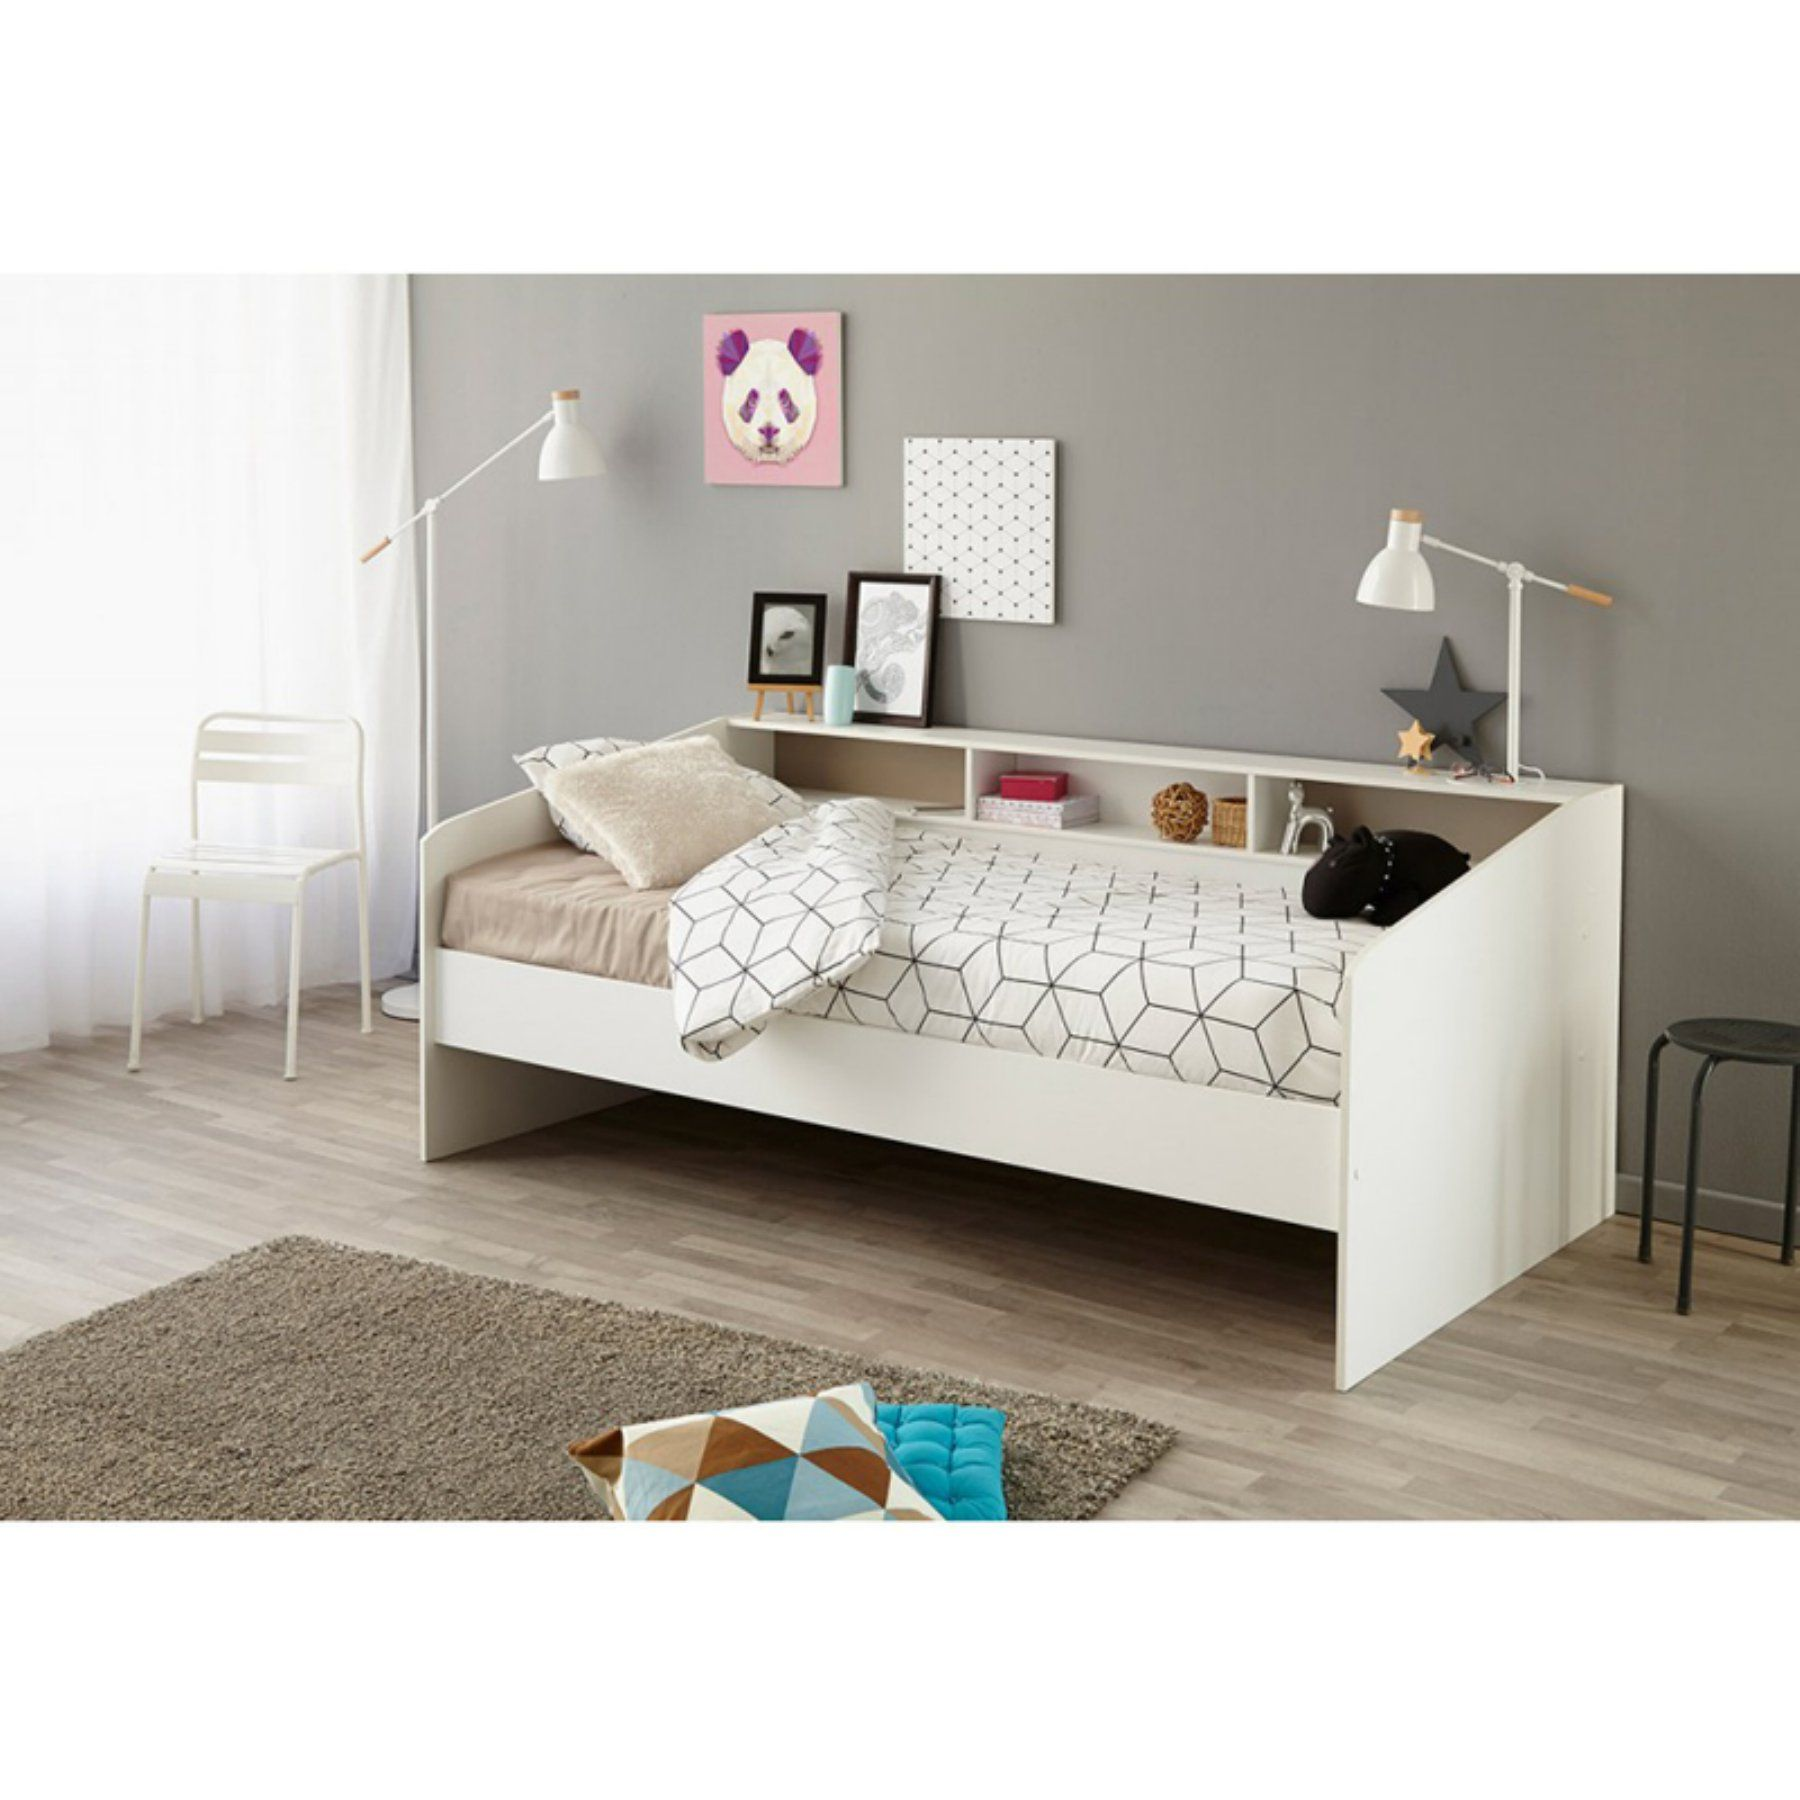 Parisot Sleep Youth Platform Bed With 2 Drawers Neutral White